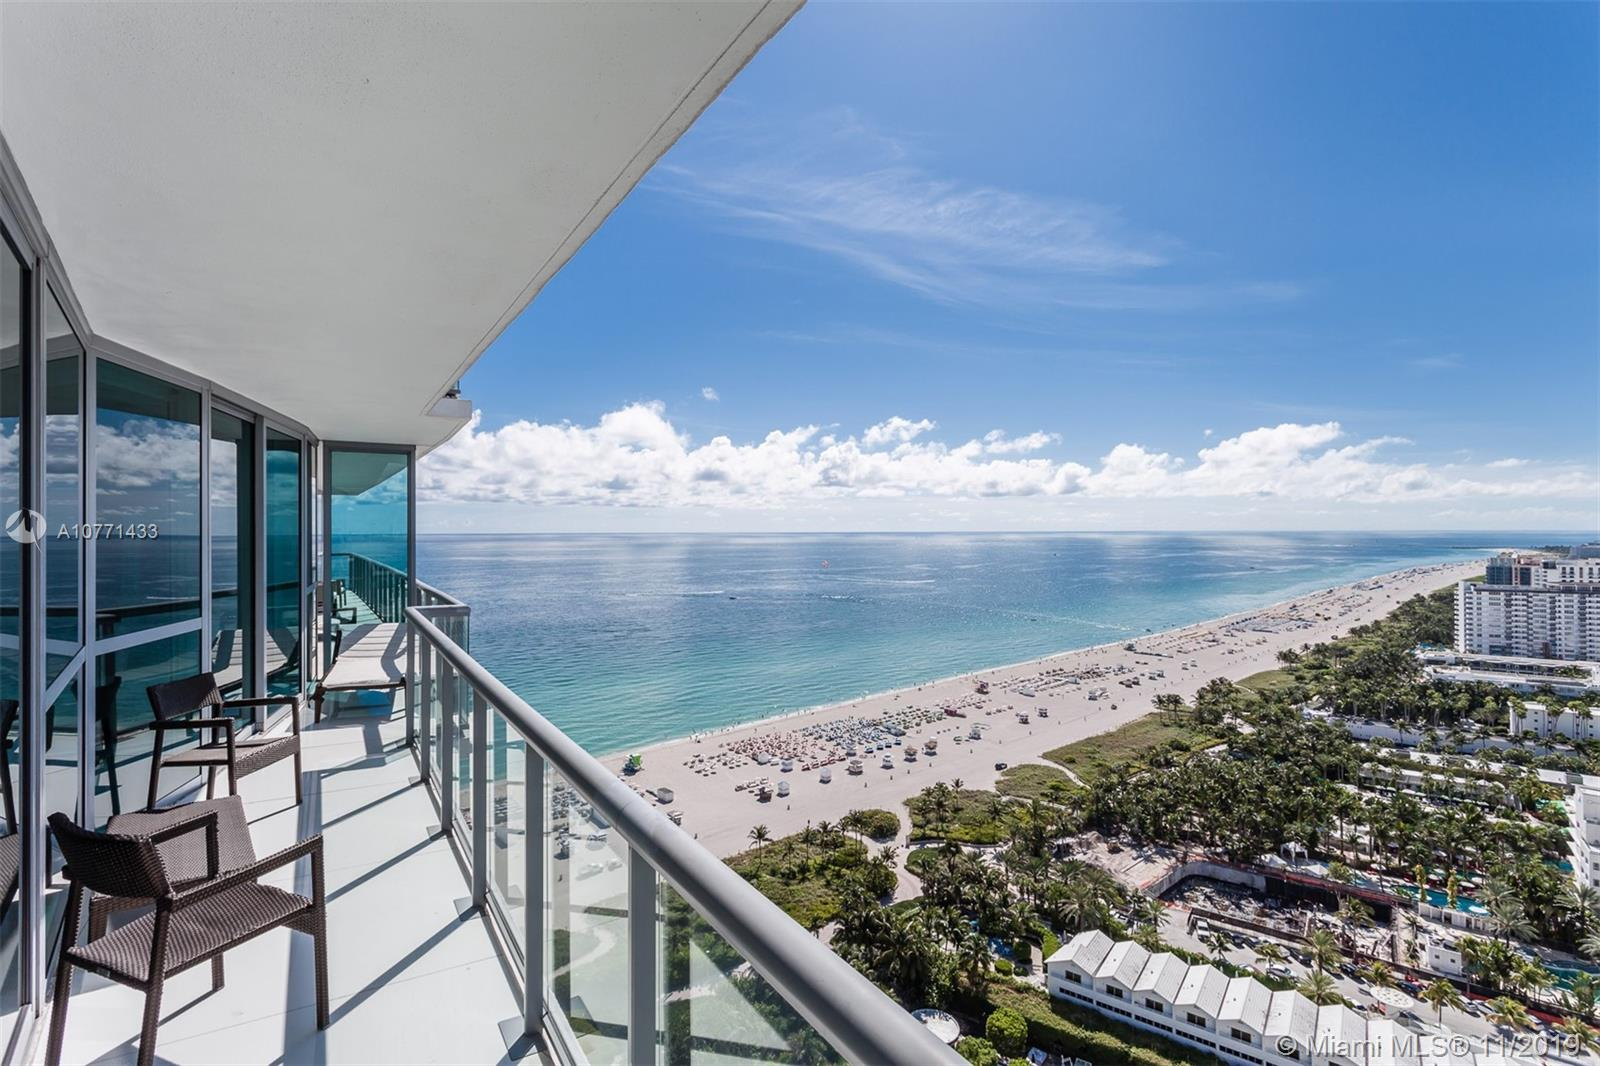 101 20th St # 3106, Miami Beach, Florida 33139, 2 Bedrooms Bedrooms, ,2 BathroomsBathrooms,Residential,For Sale,101 20th St # 3106,A10771433